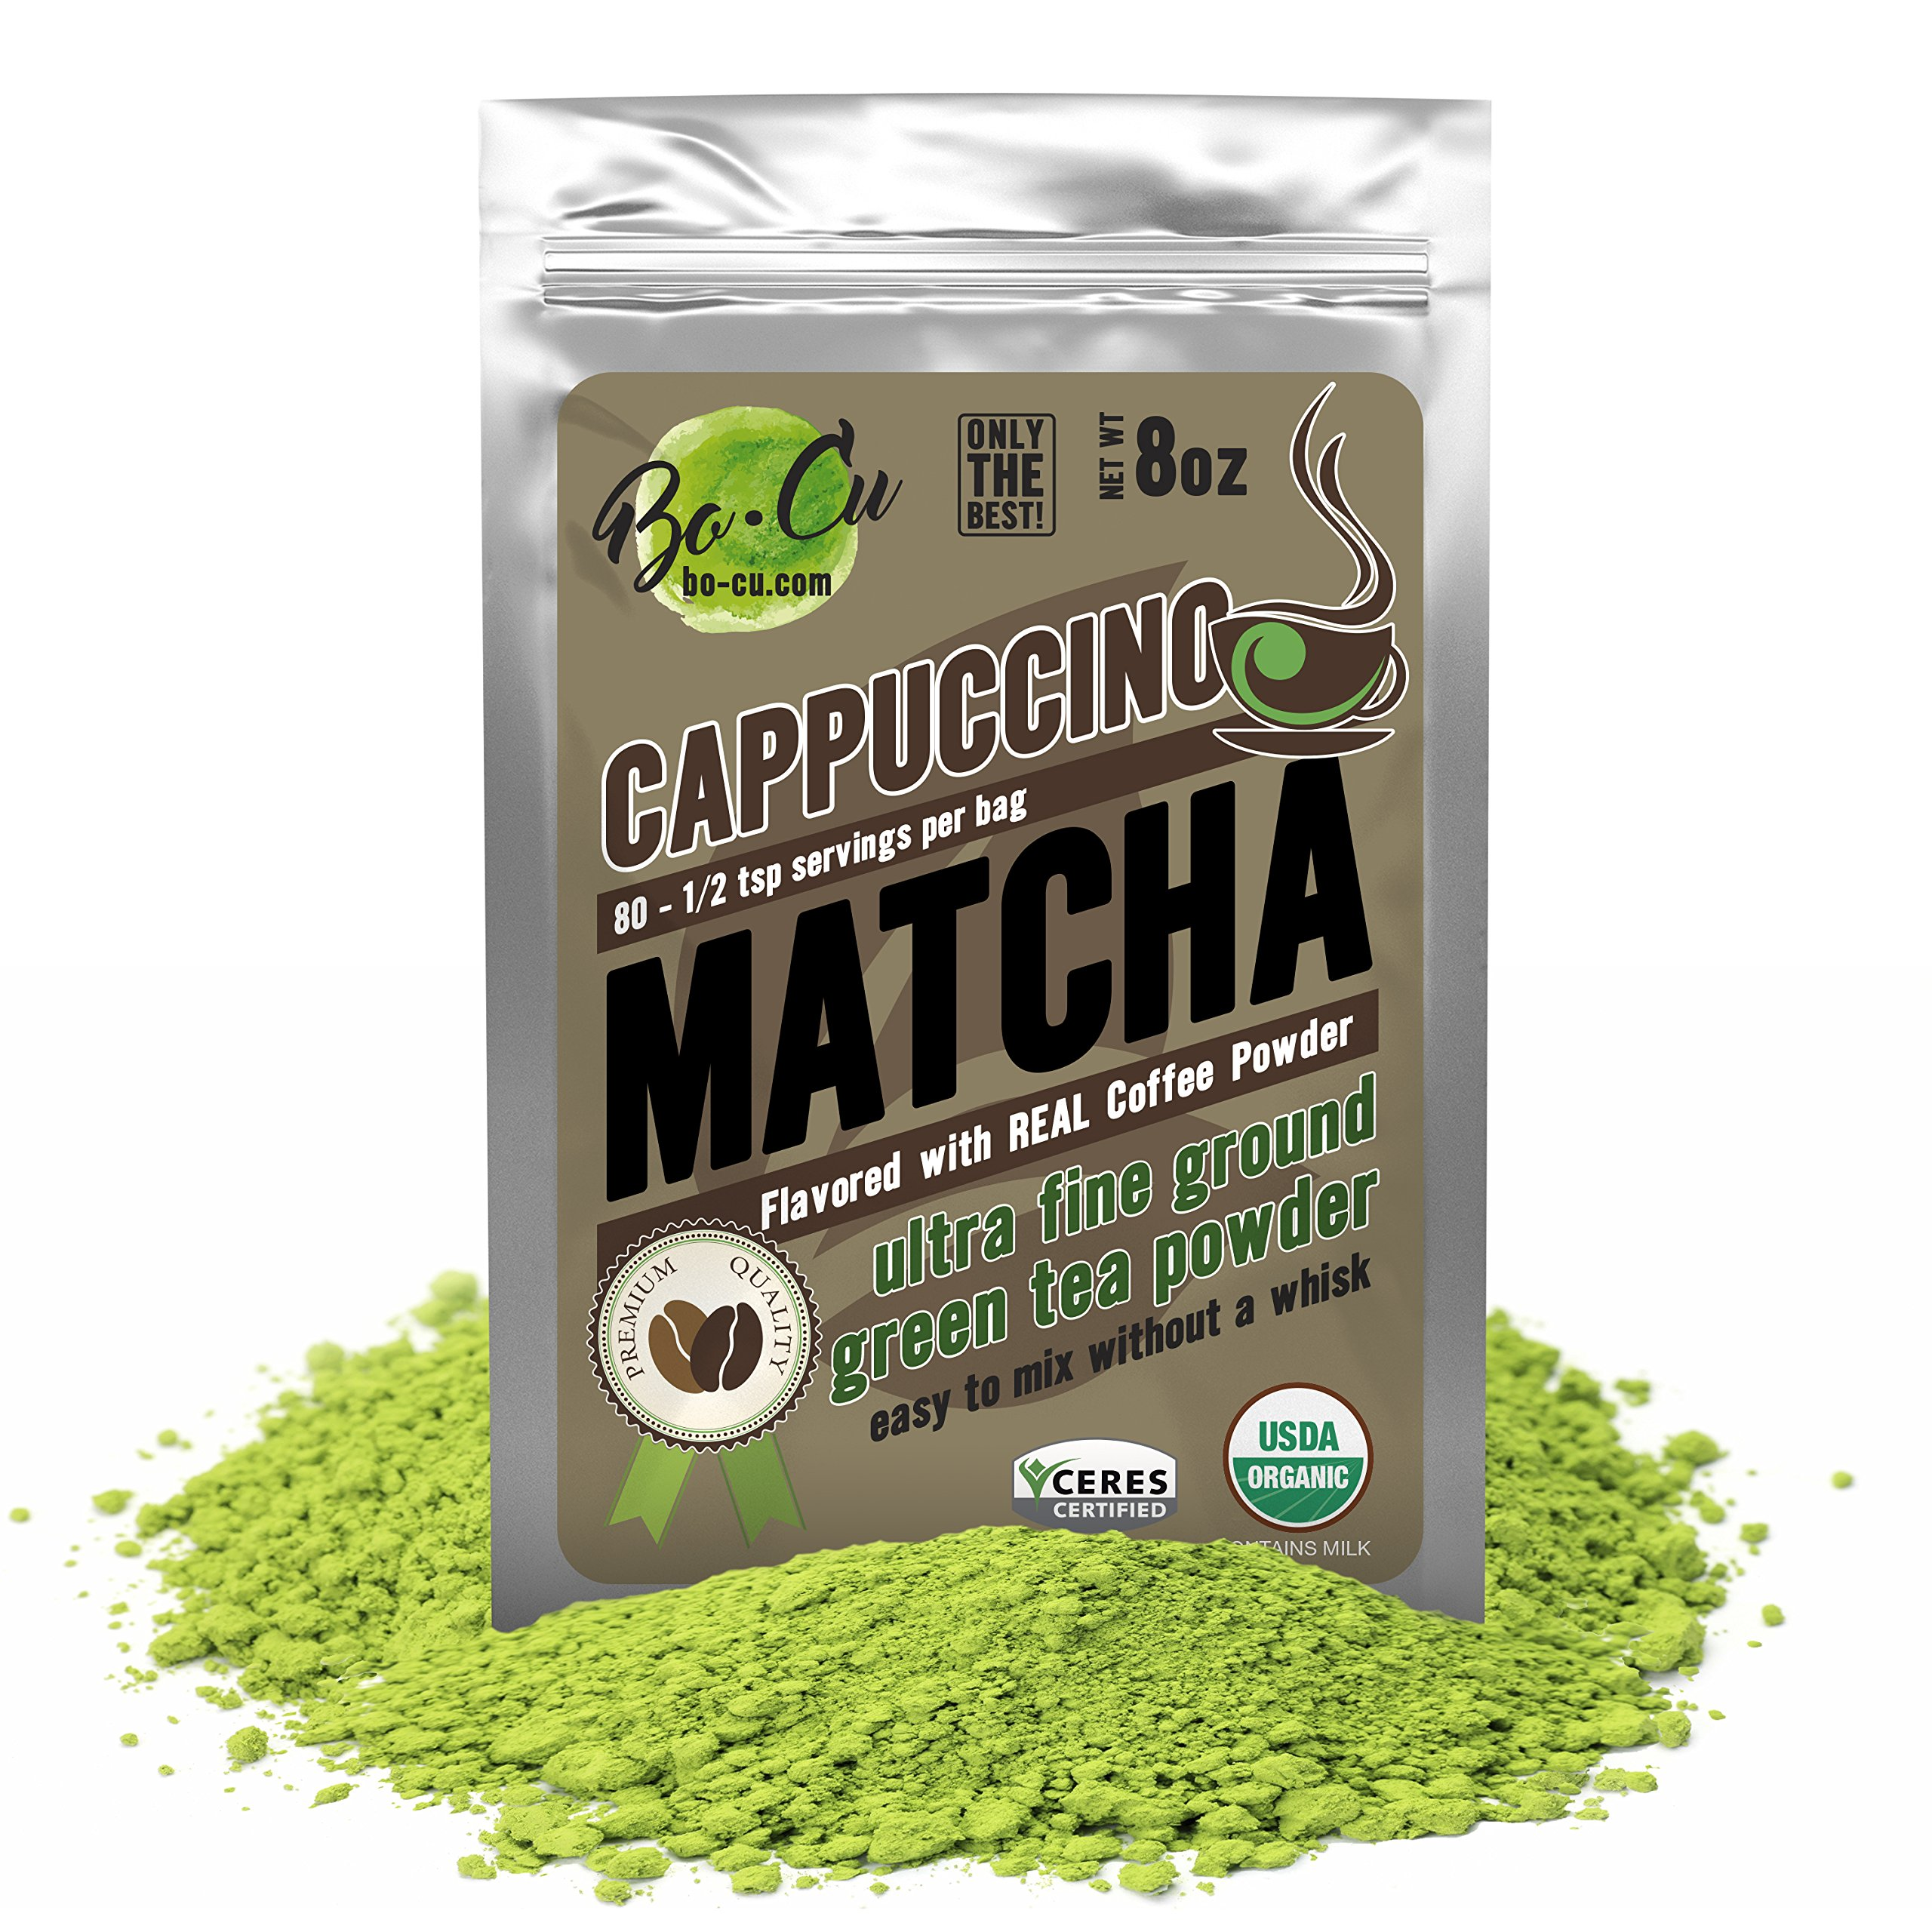 Bo-Cu Body Cappuccino Flavored Organic Matcha Green Tea Powder - 80 Servings, 8 oz - Real Coffee Natural Flavored Instant Tea for Drinking, Smoothies or Baking, Grade A Matcha